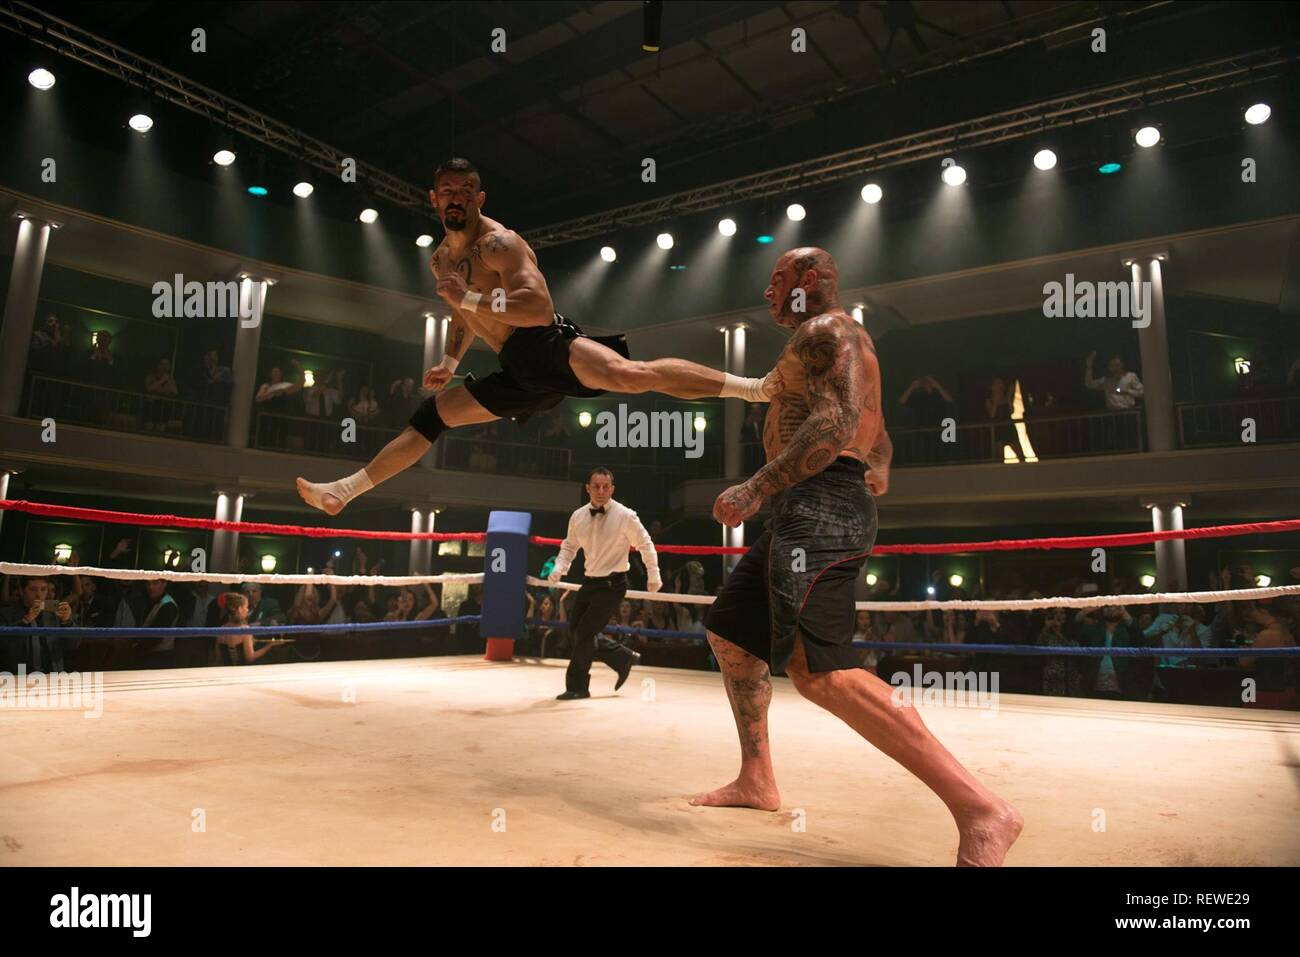 SCOTT ADKINS & MARTYN FORD BOYKA: UNDISPUTED IV (2016) - Stock Image